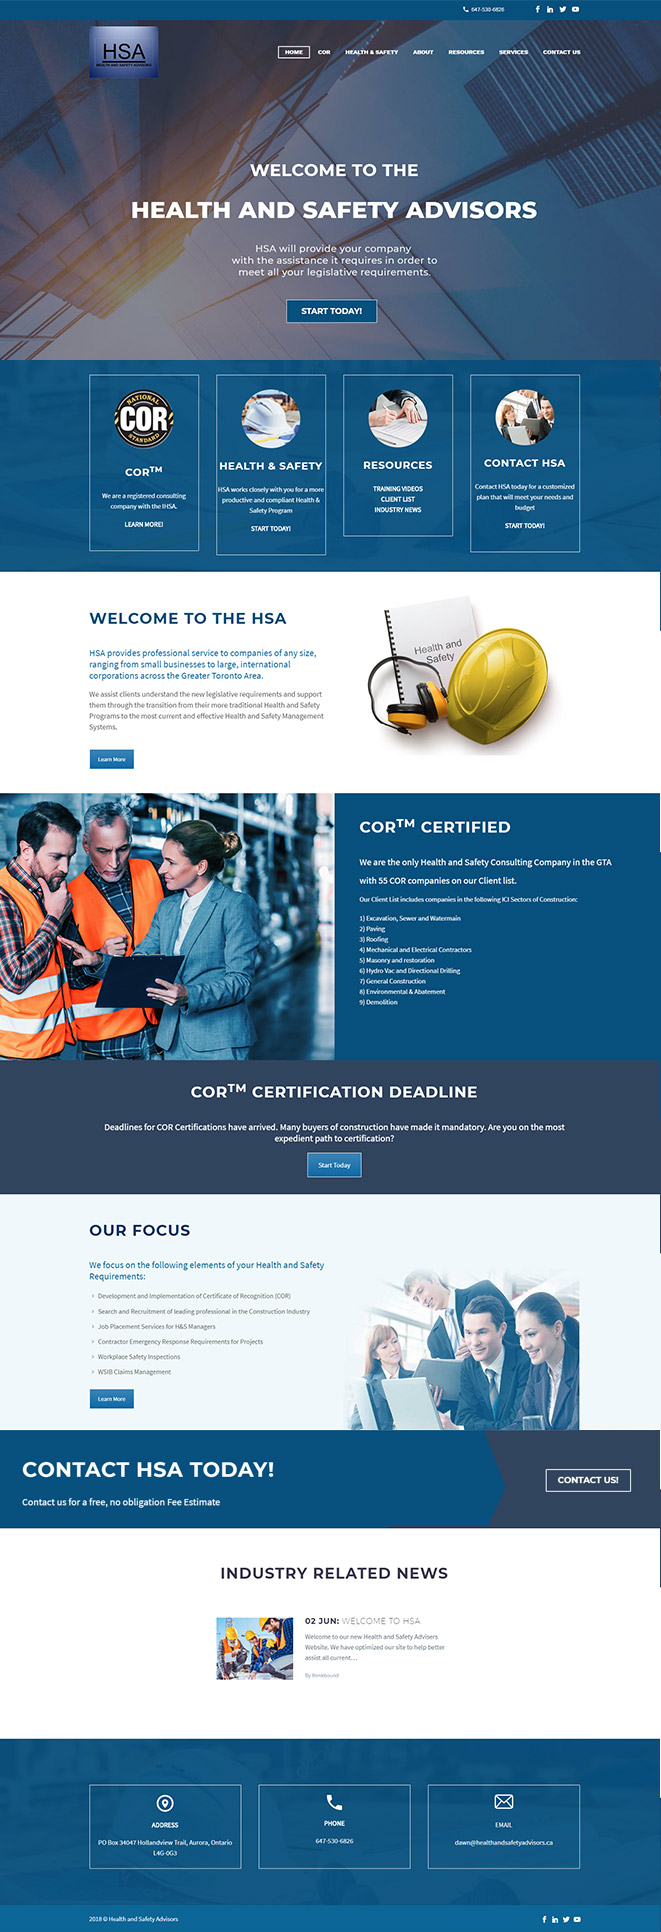 website design health and safety advisers company